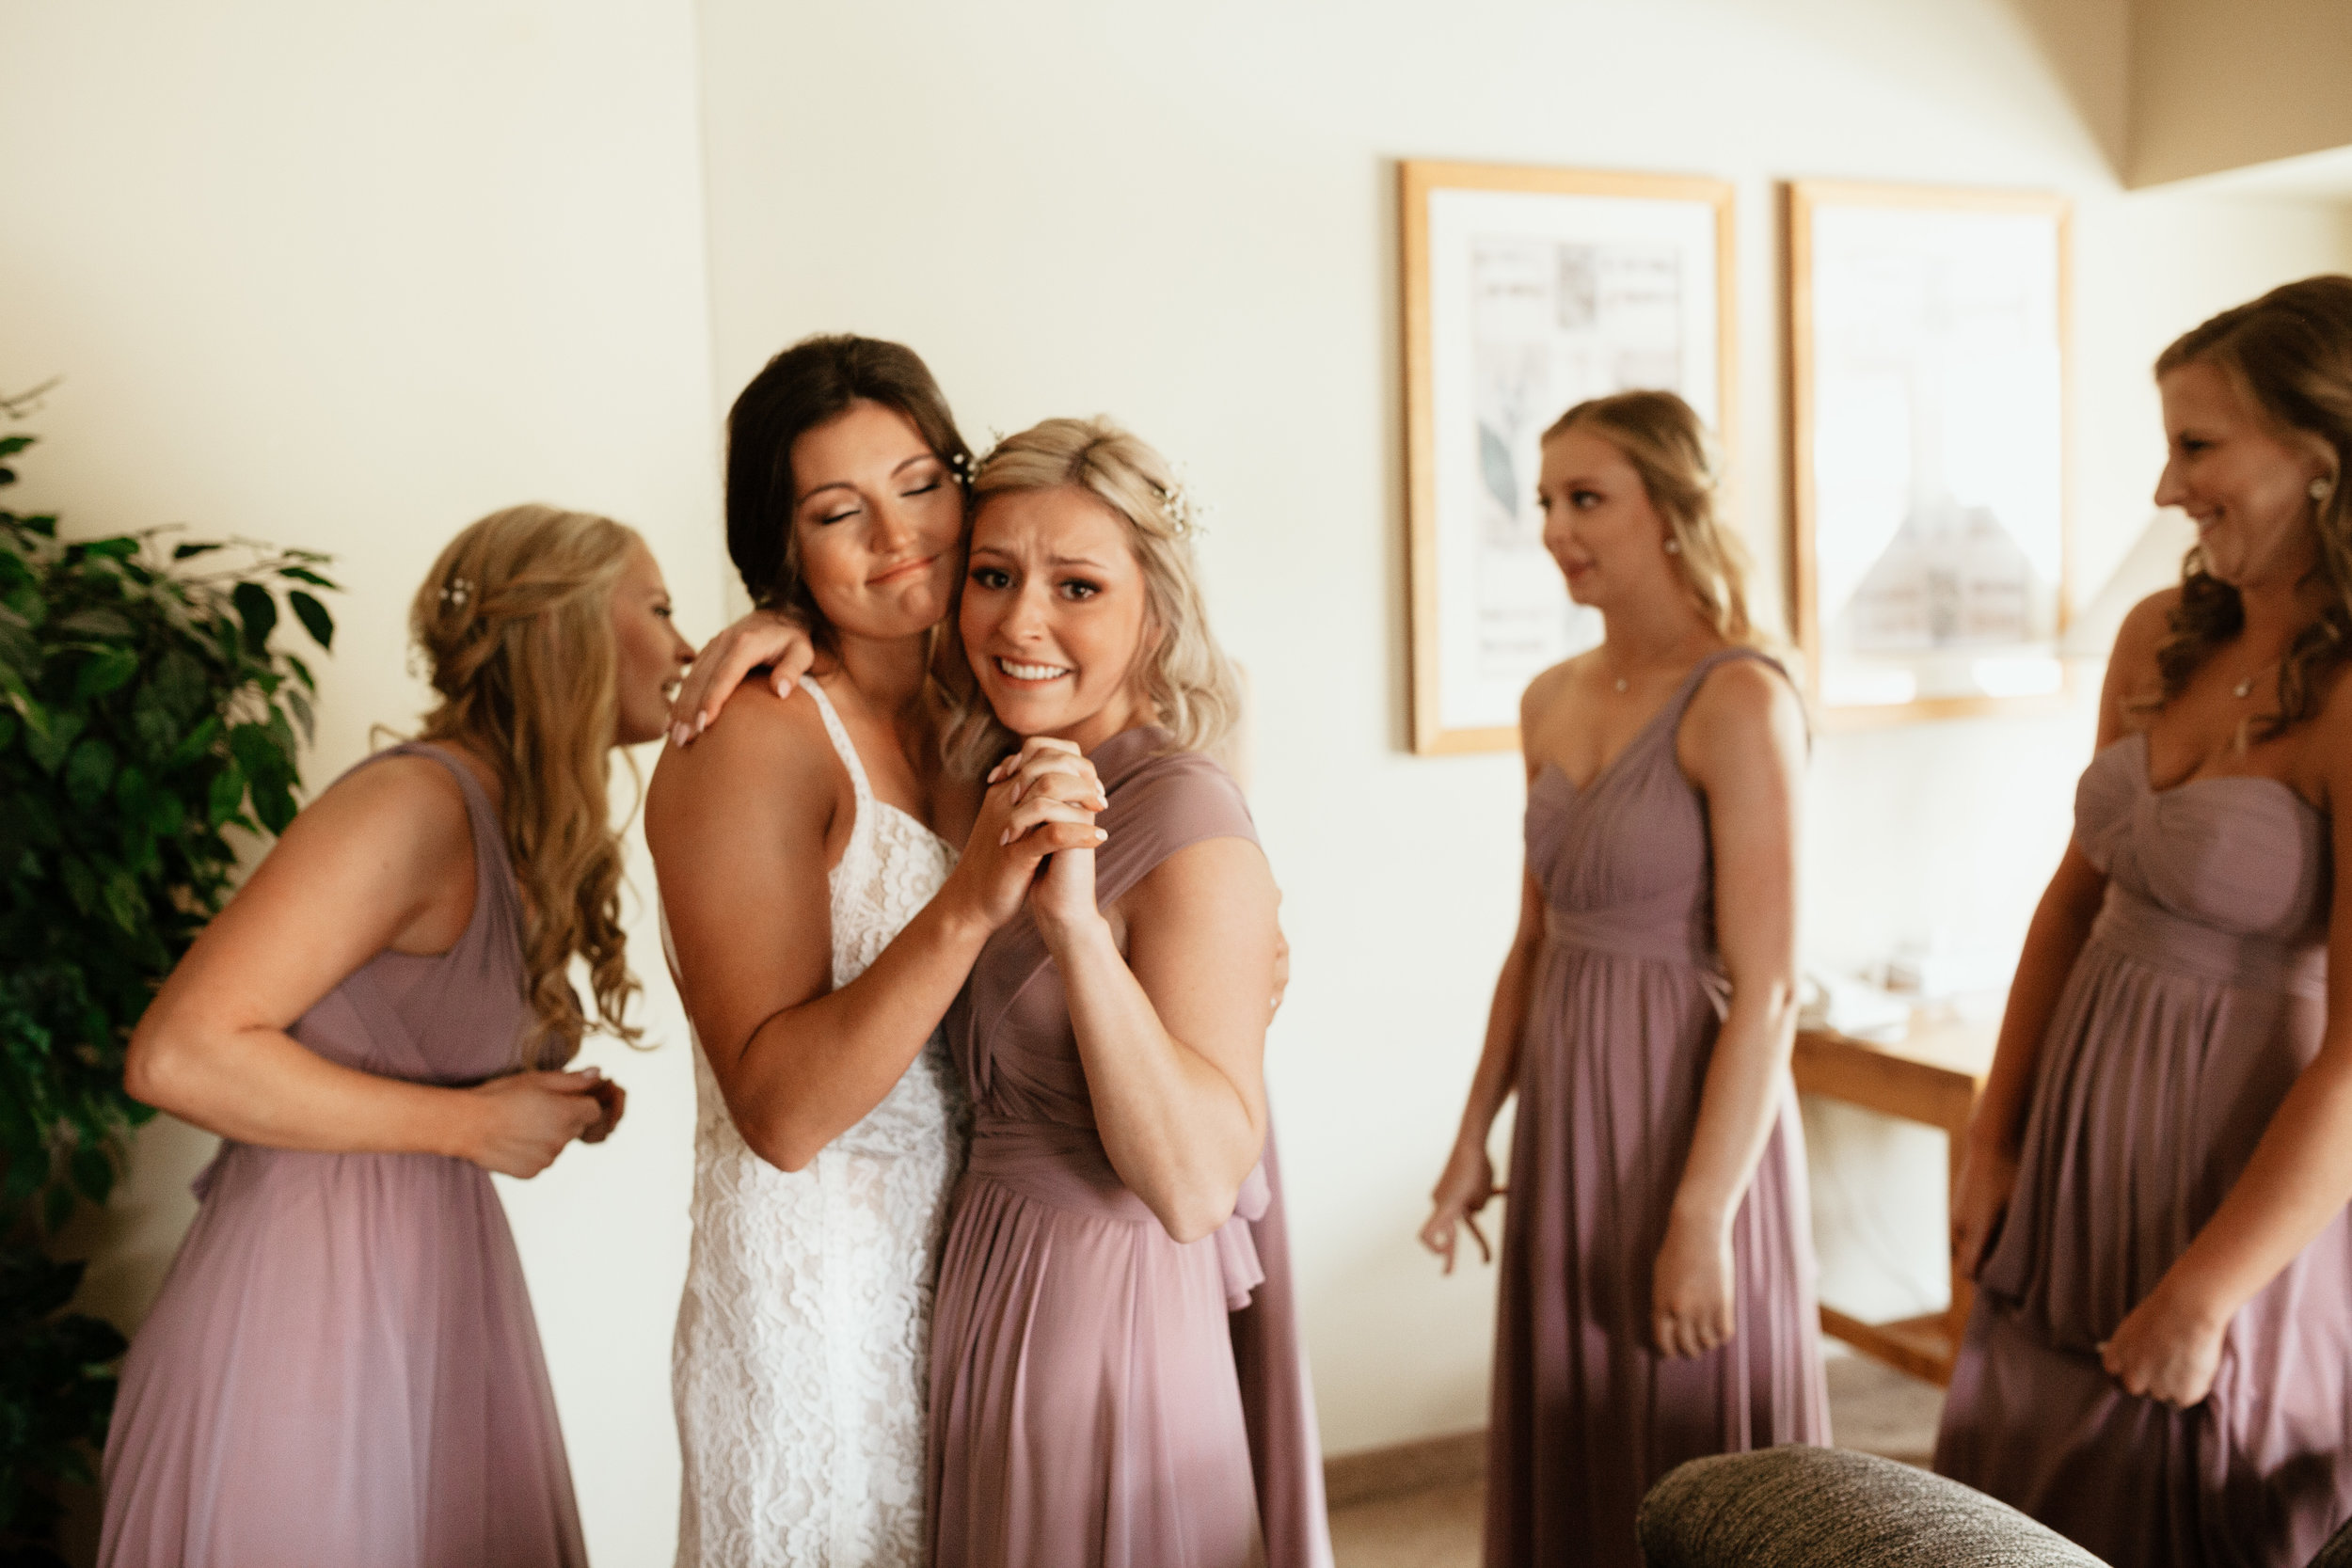 Dane + Jessica 1 - Getting Ready-174.jpg